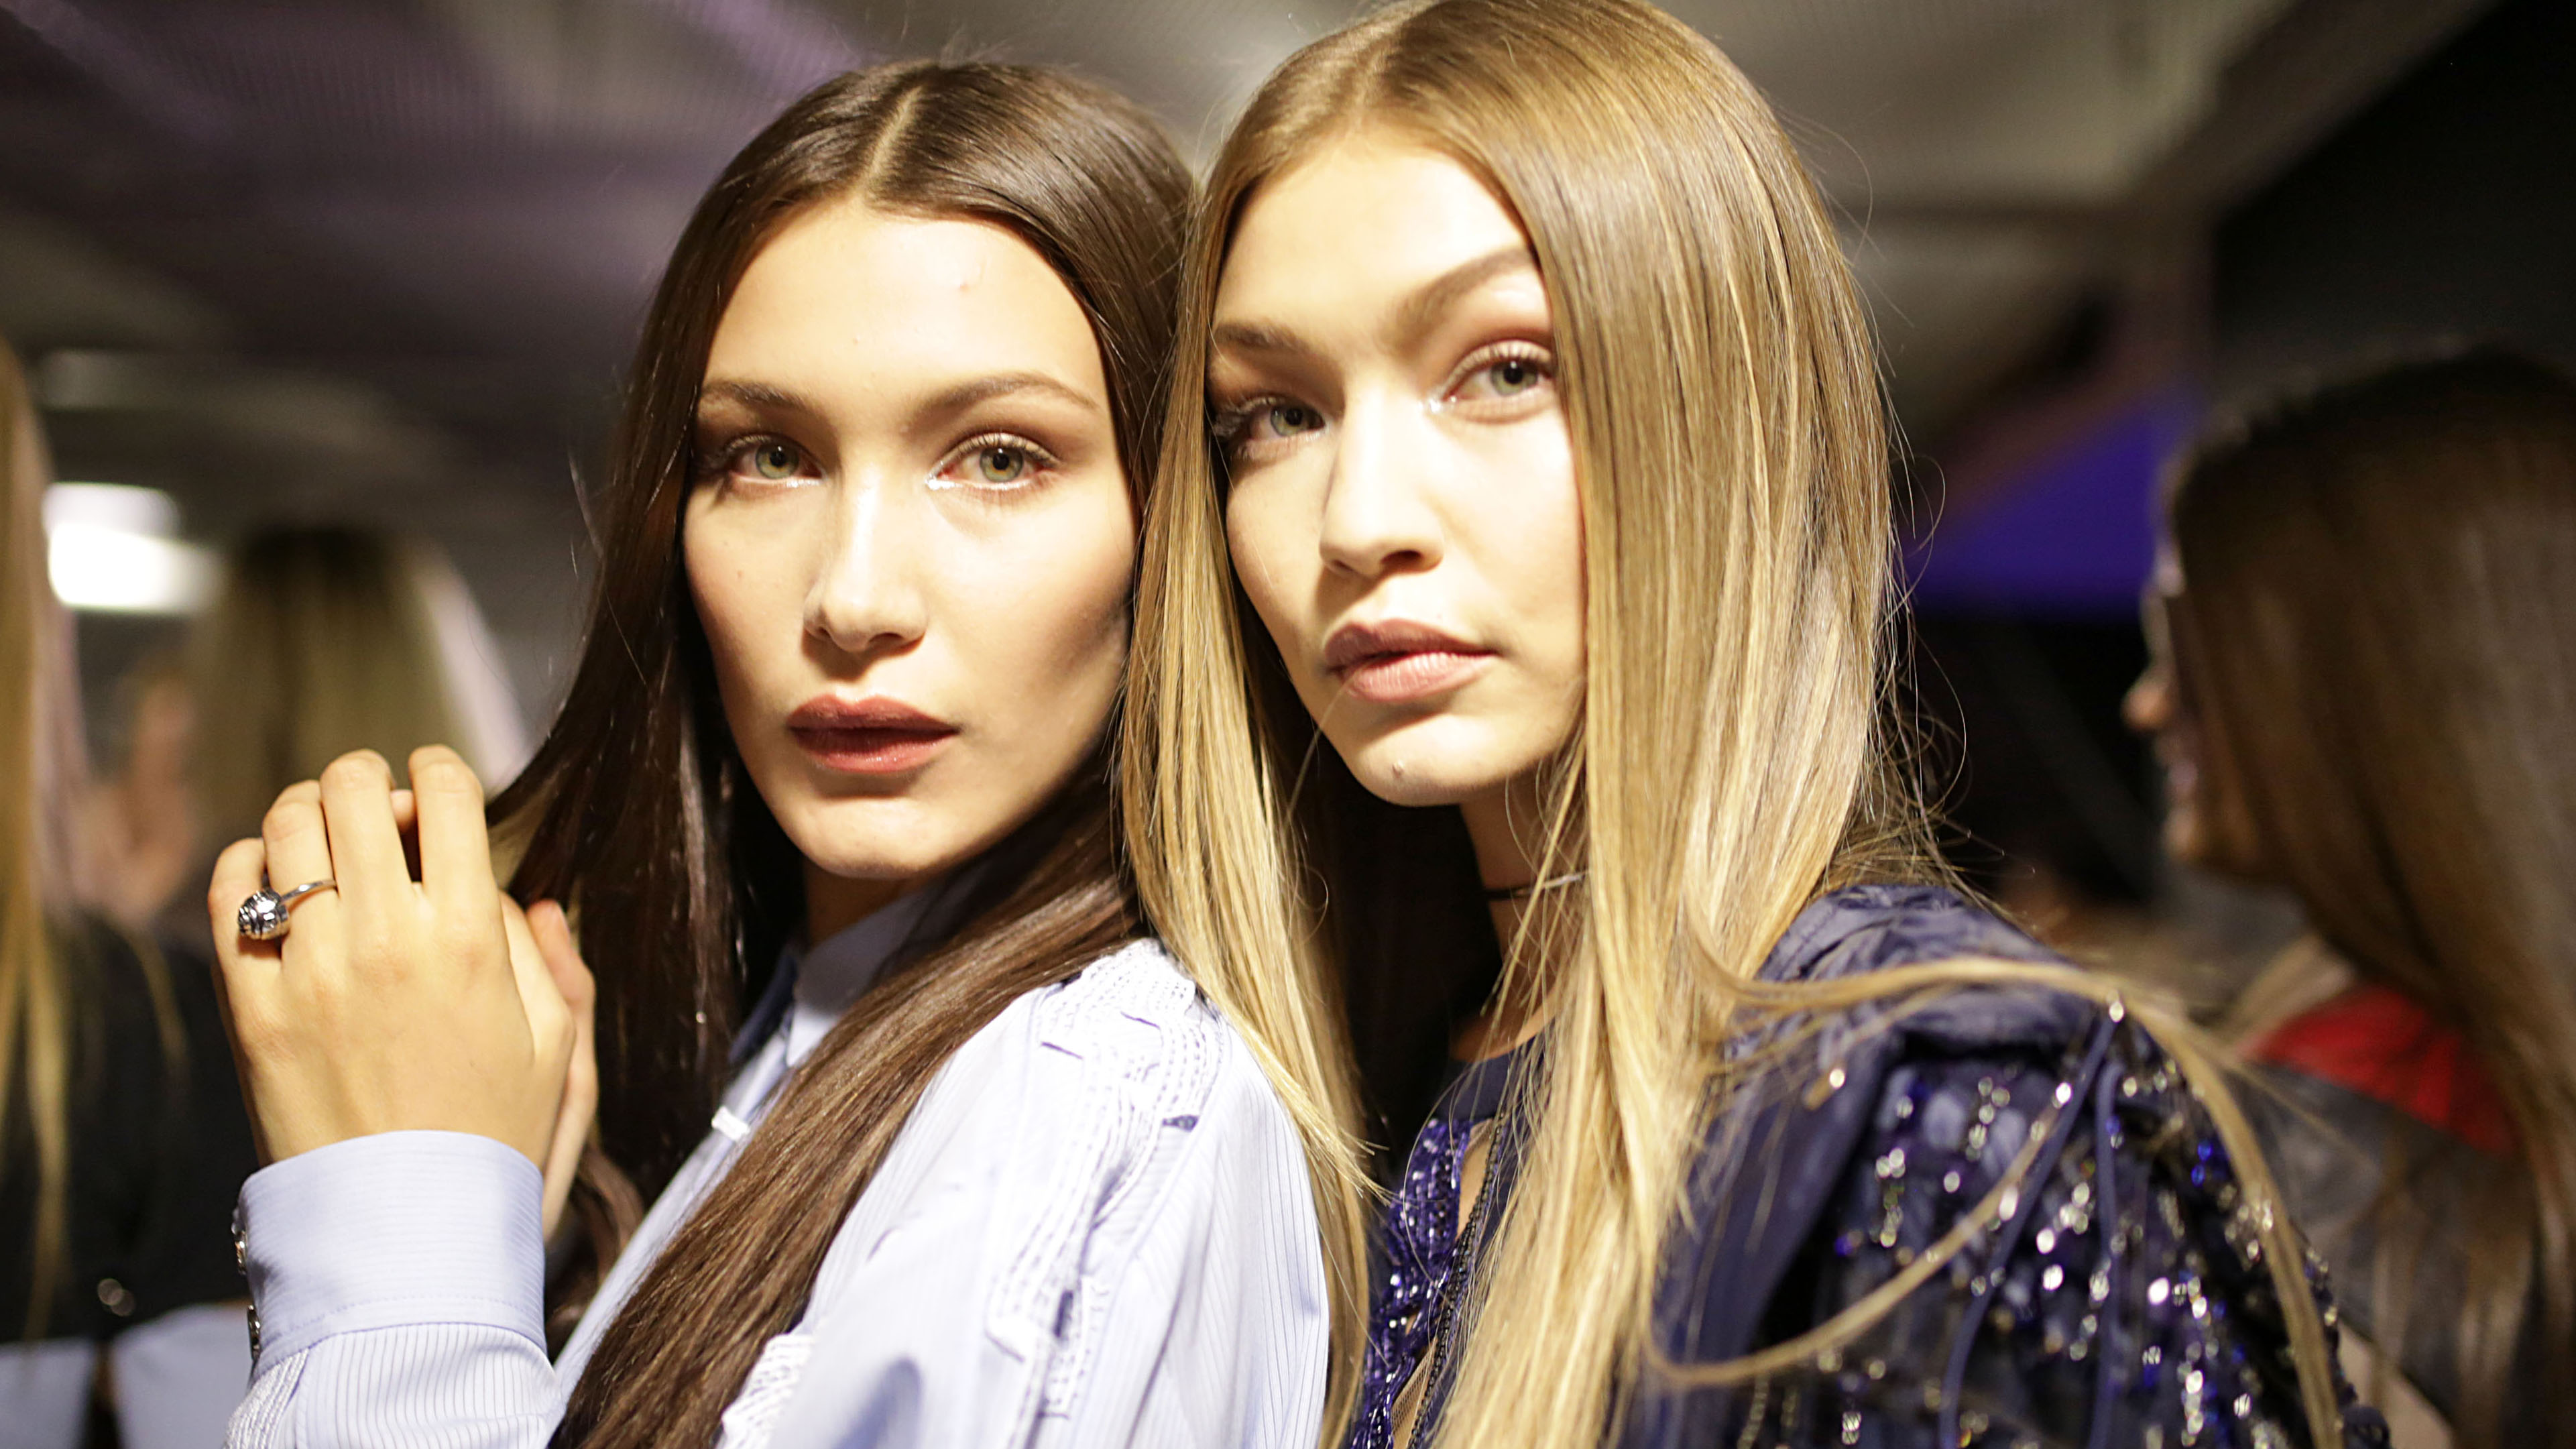 Silver shimmer sensation on Bella and Gig Hadid.